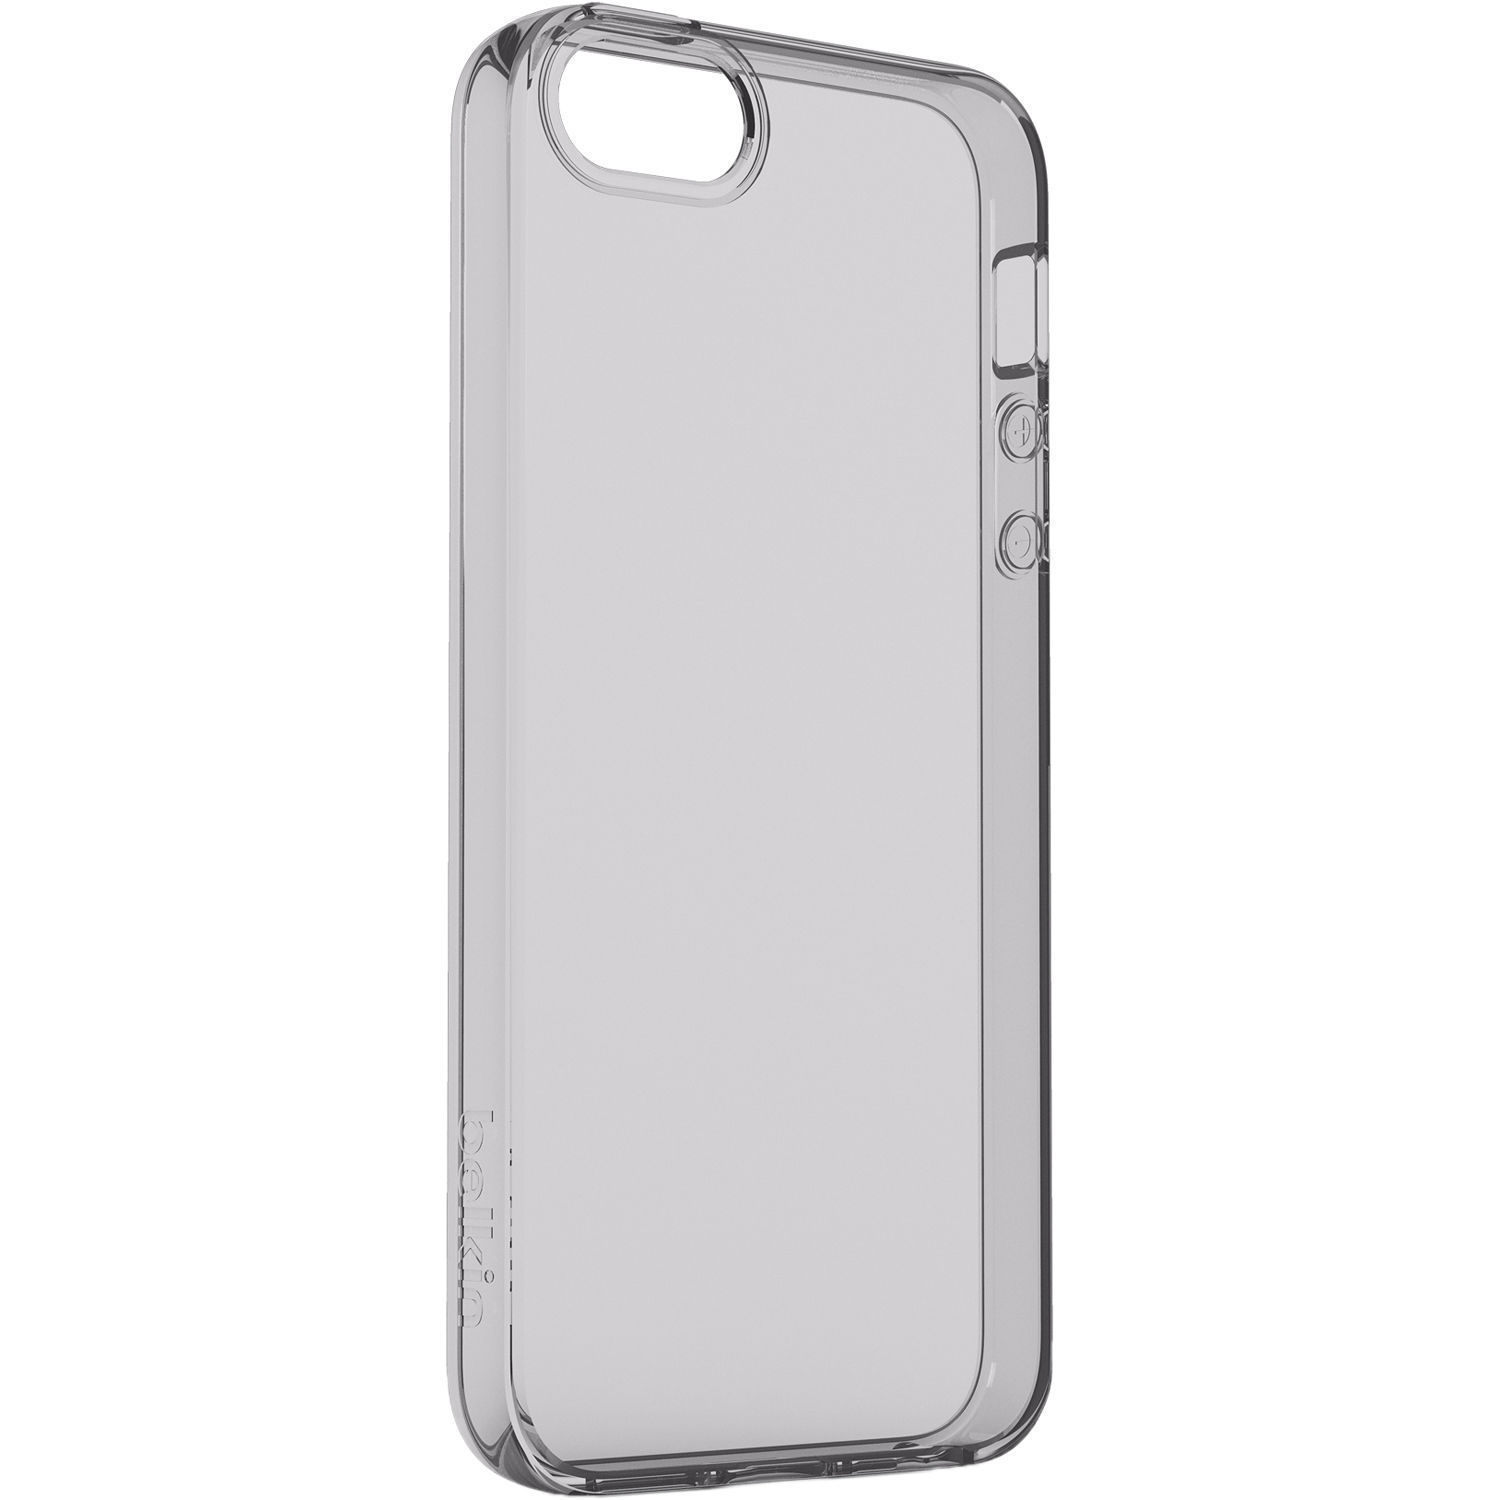 finest selection 6854d 47698 Belkin Air Protect Clear Case for iPhone SE (Space Gray)